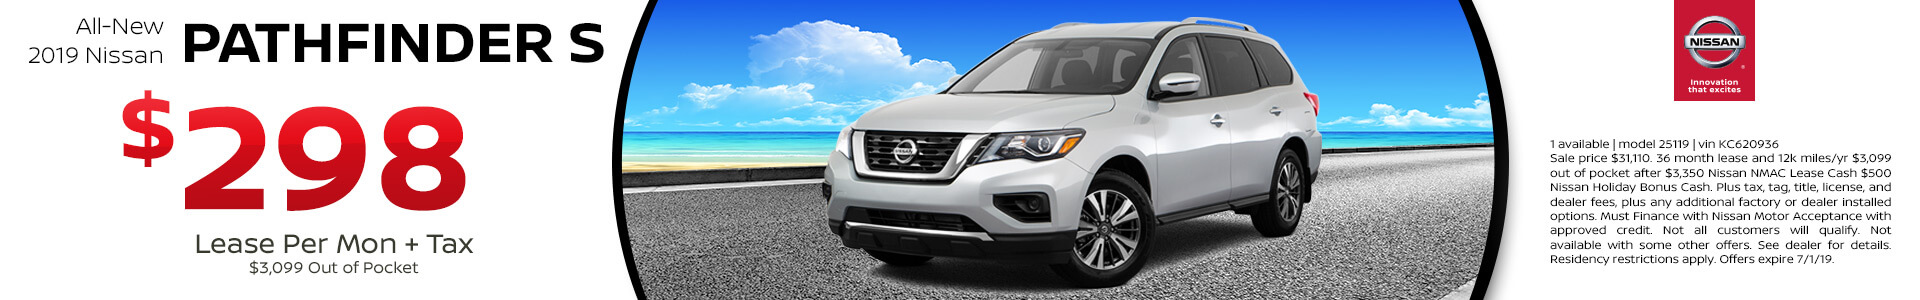 2019 Nissan Pathfinder Lease for $298